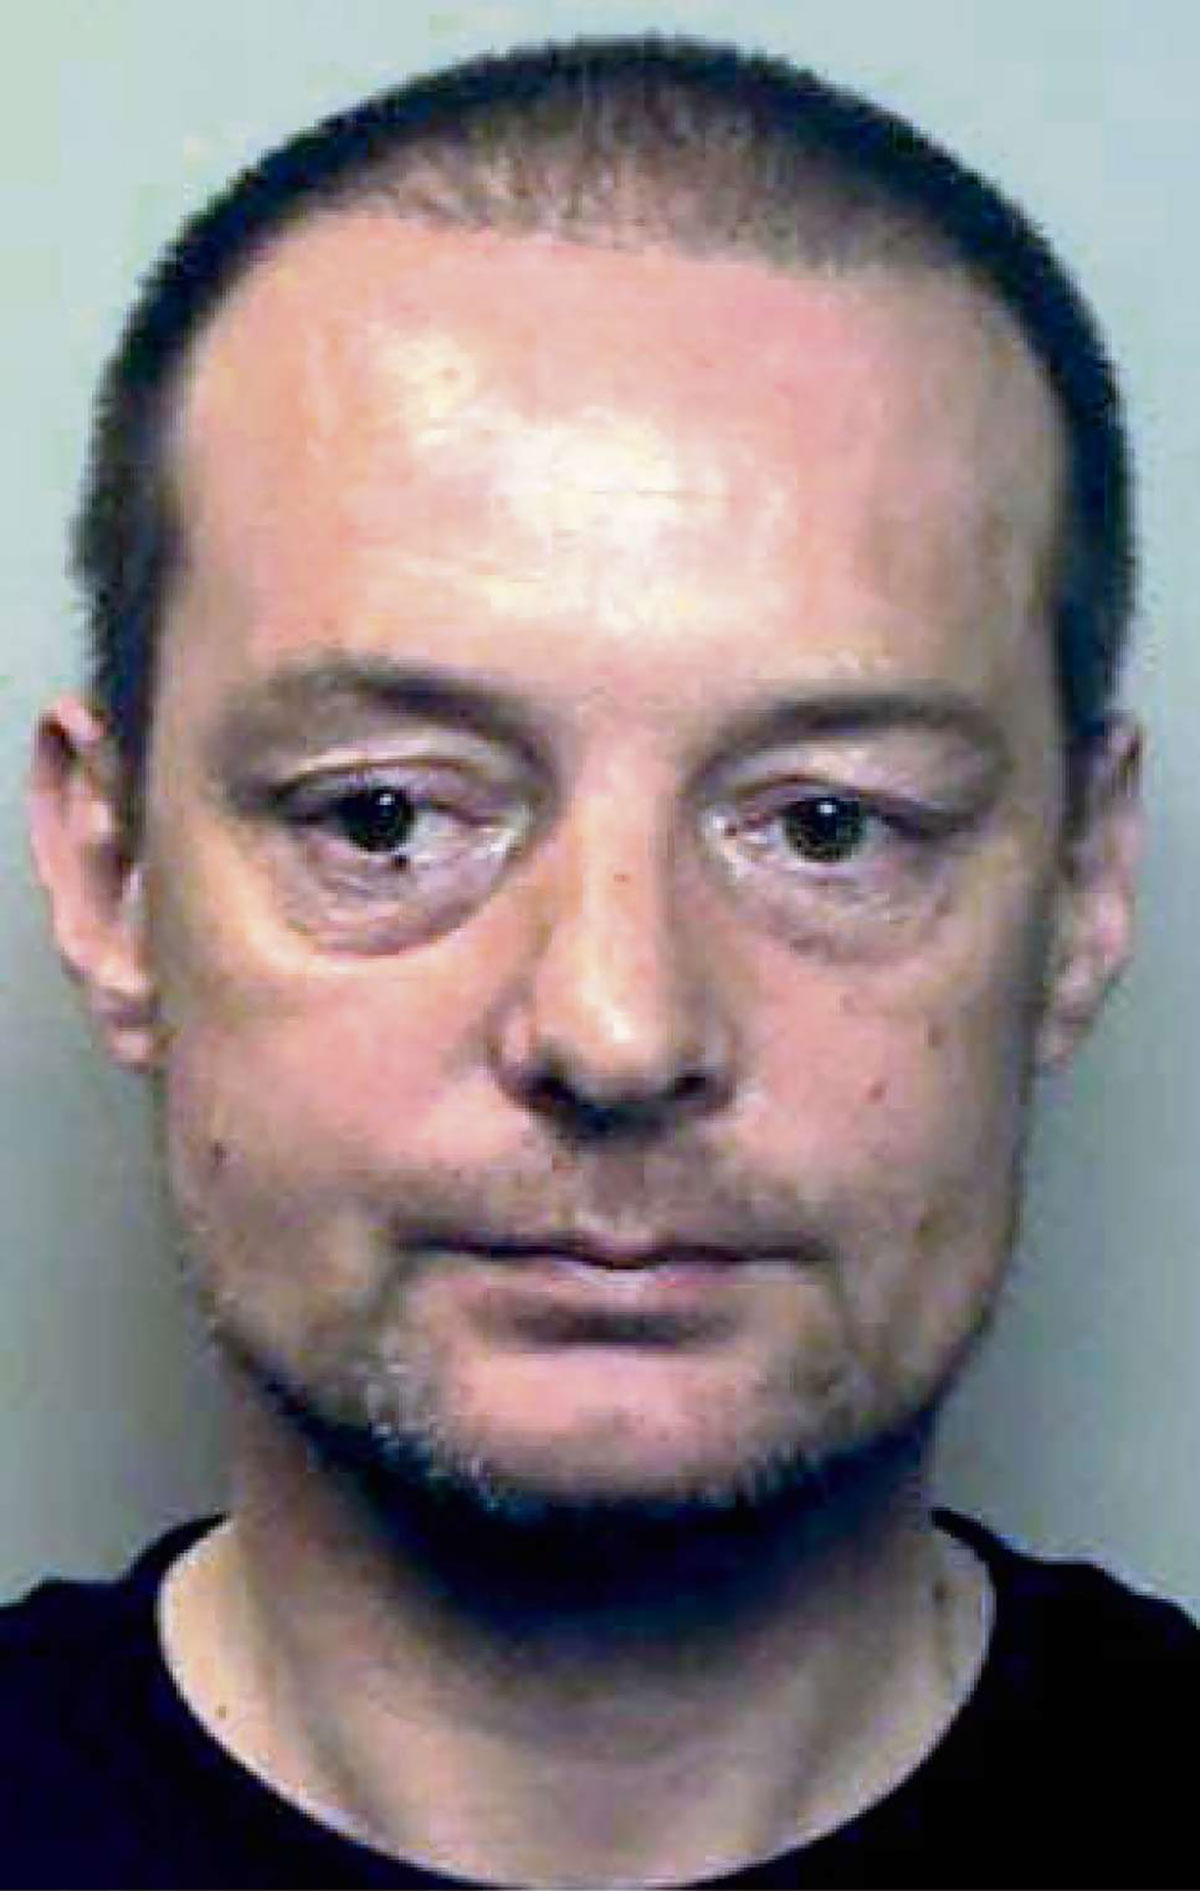 JAILED: John Mahon was jailed for more than six years